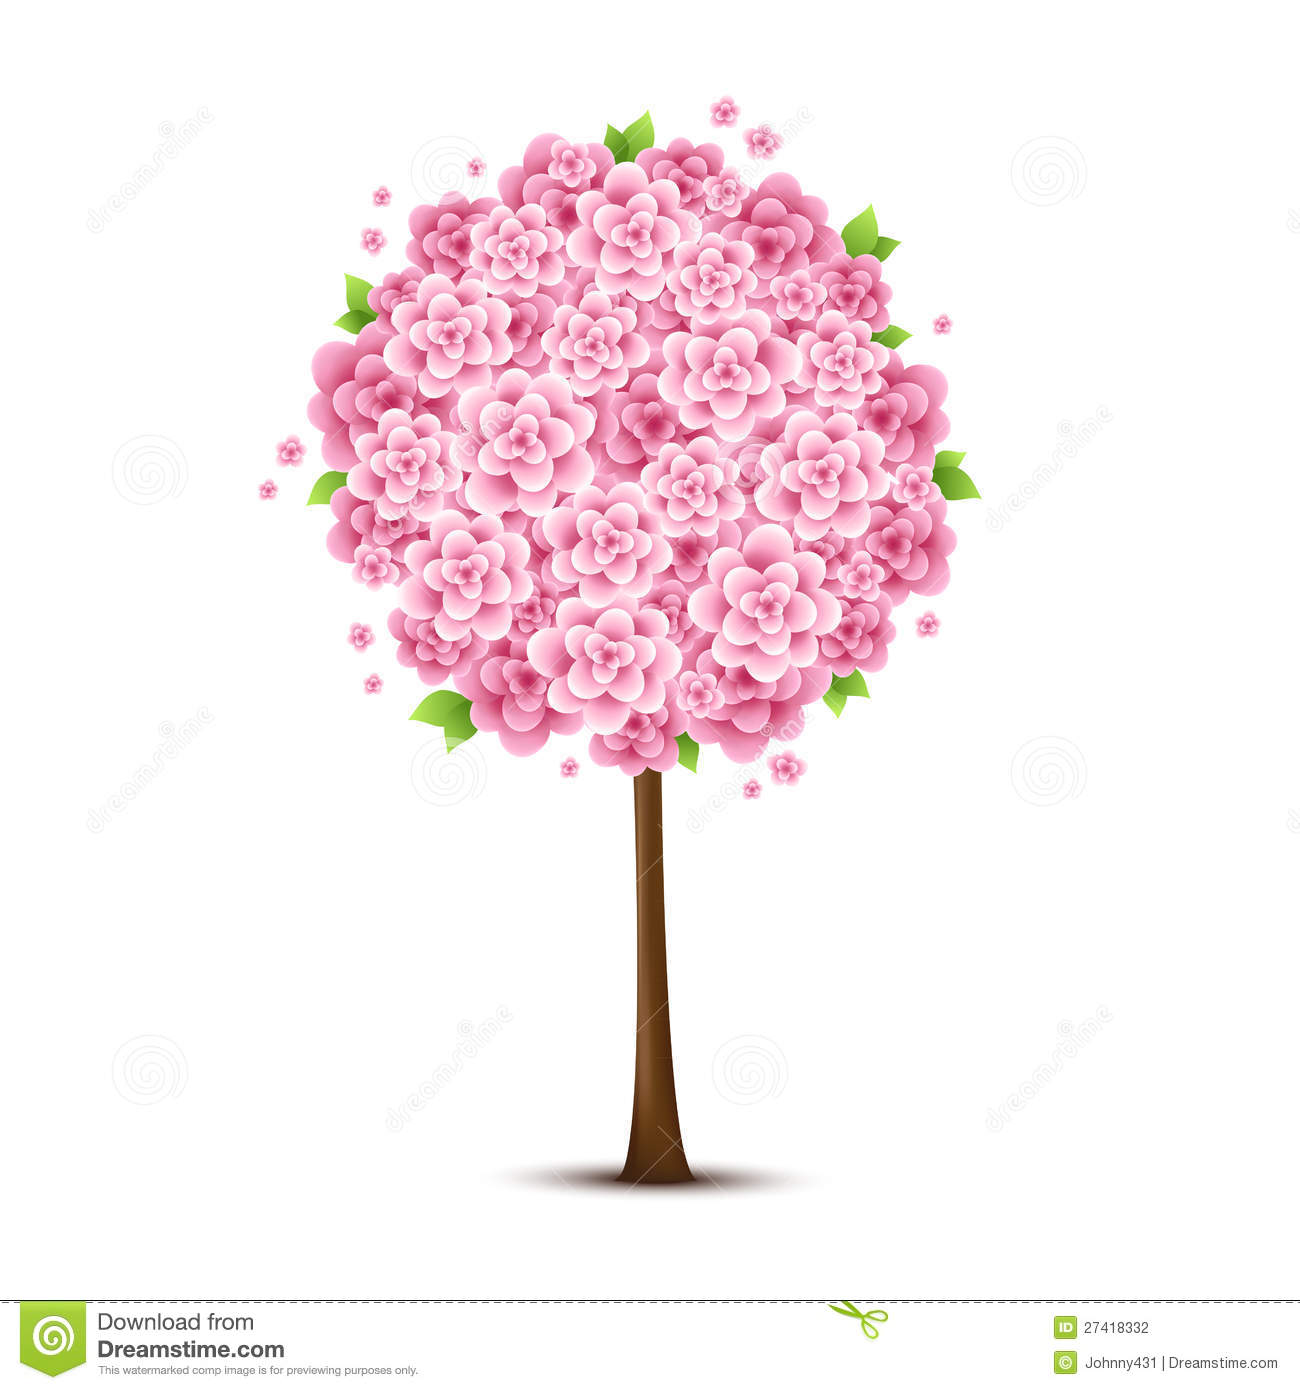 Vector Tree With Pink Flowers Stock graphy Image